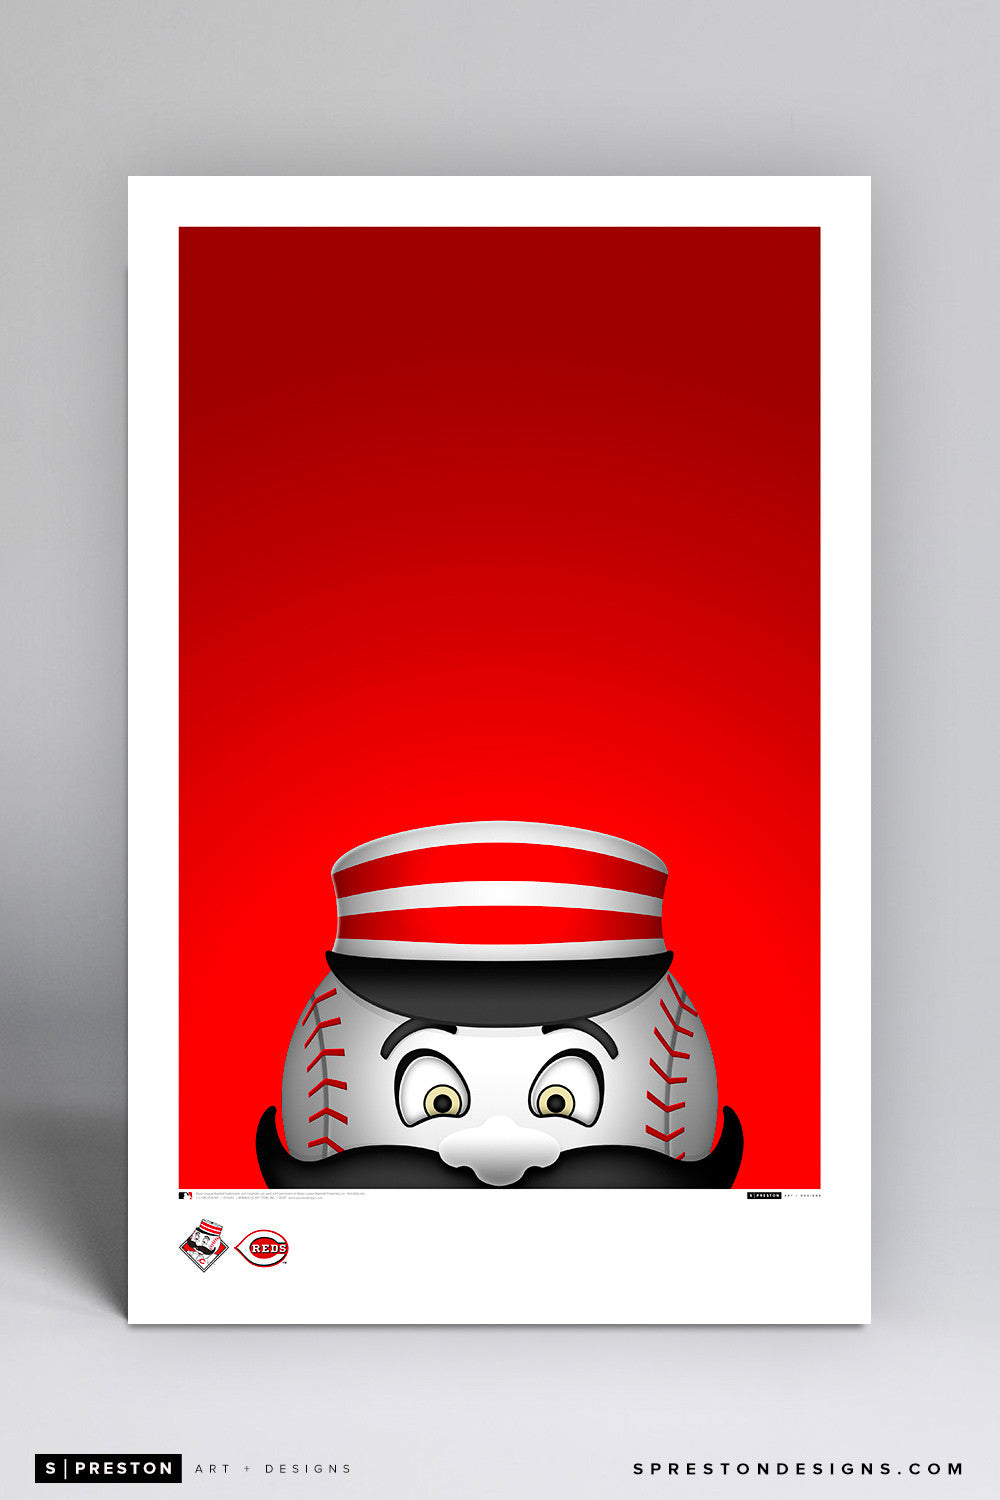 Minimalist Mr. Redlegs Art Poster Art Poster - Cincinnati Reds - S. Preston Art + Designs